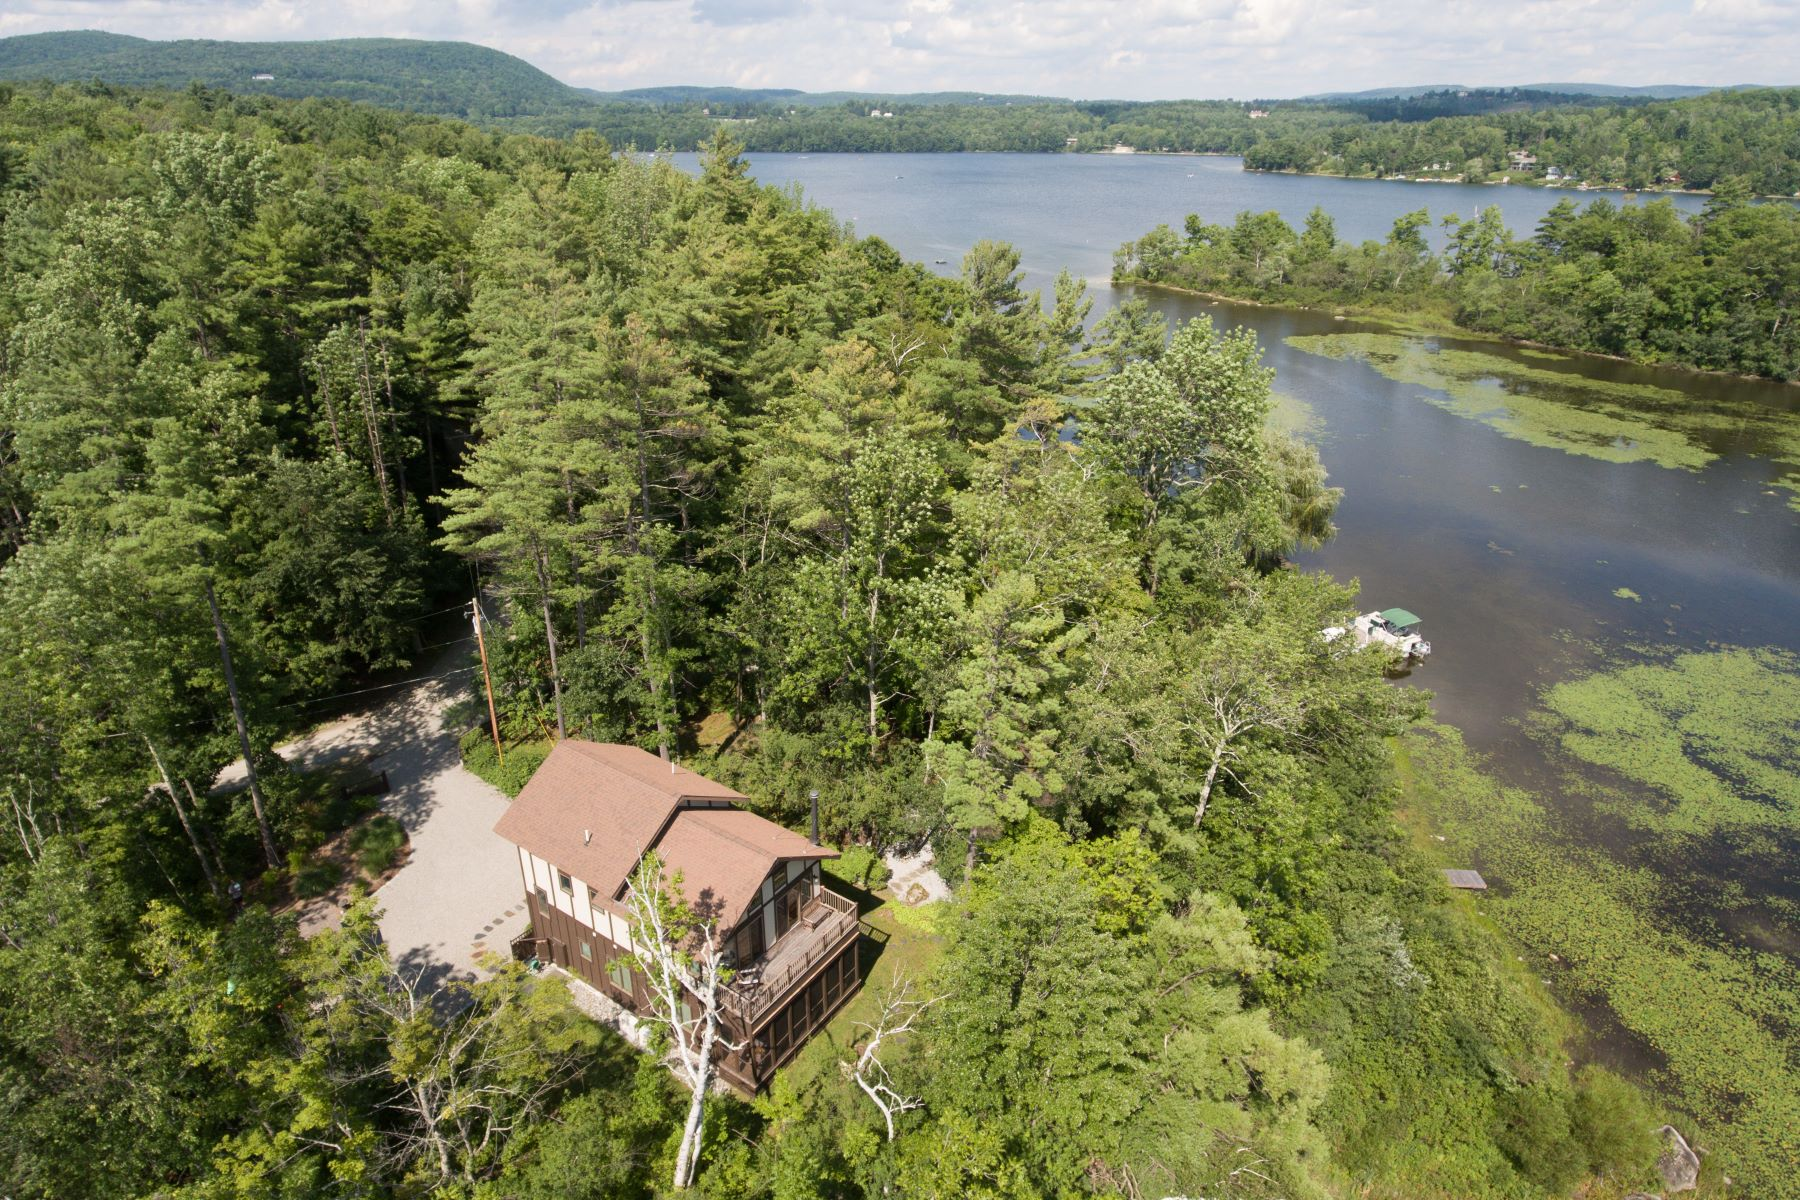 Single Family Home for Sale at Lakefront Paradise on Magical Stockbridge Bowl 44 Lake Dr Stockbridge, Massachusetts 01262 United States